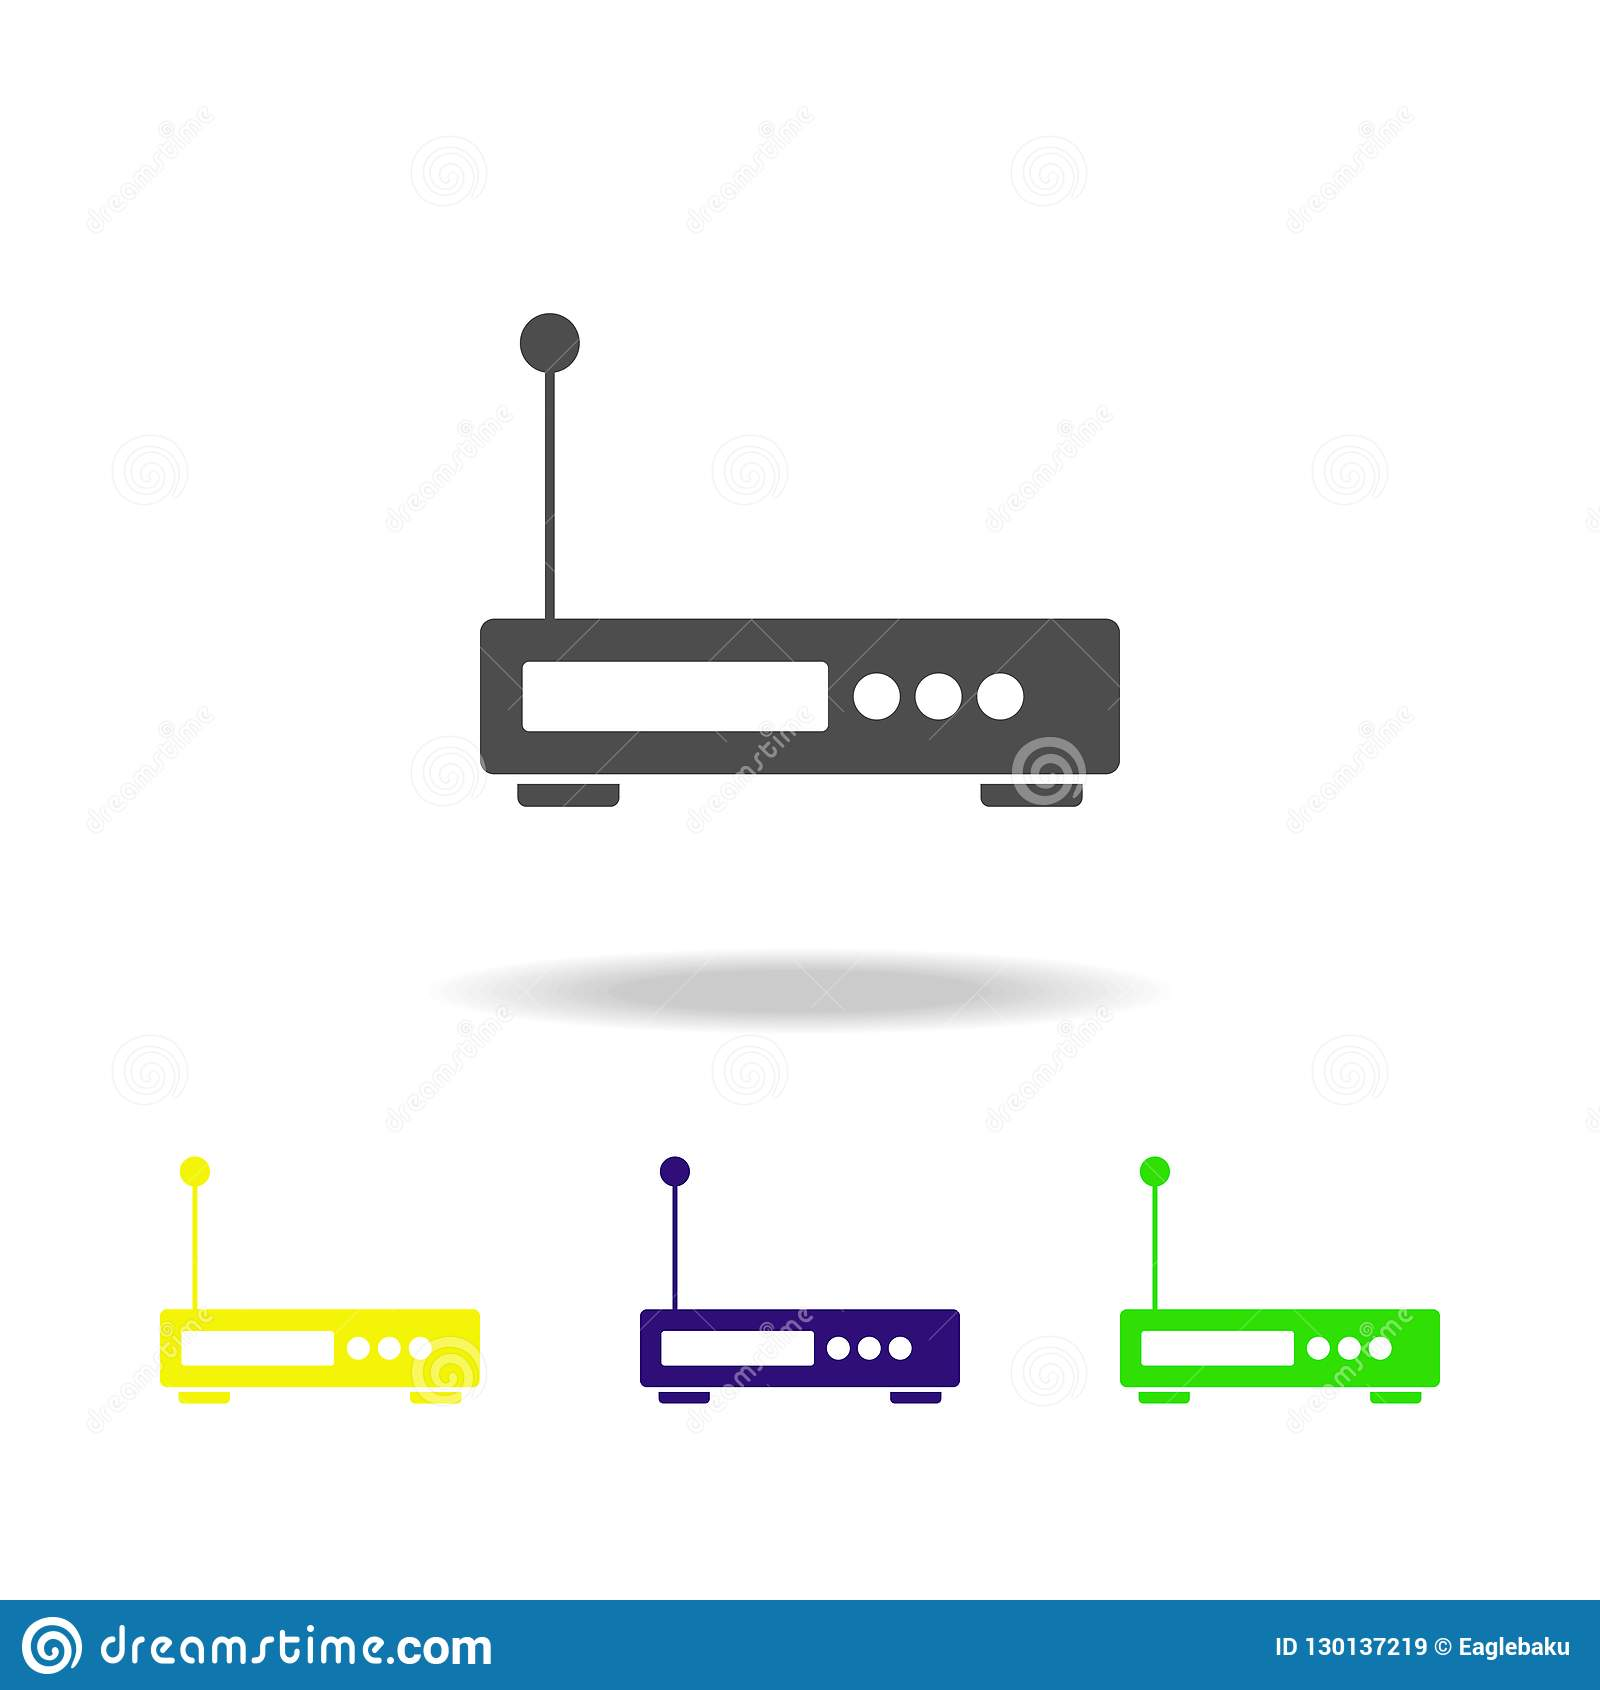 hight resolution of modem multicolor icon element of web icons signs and symbols icon modem wiring diagram icon modem diagram